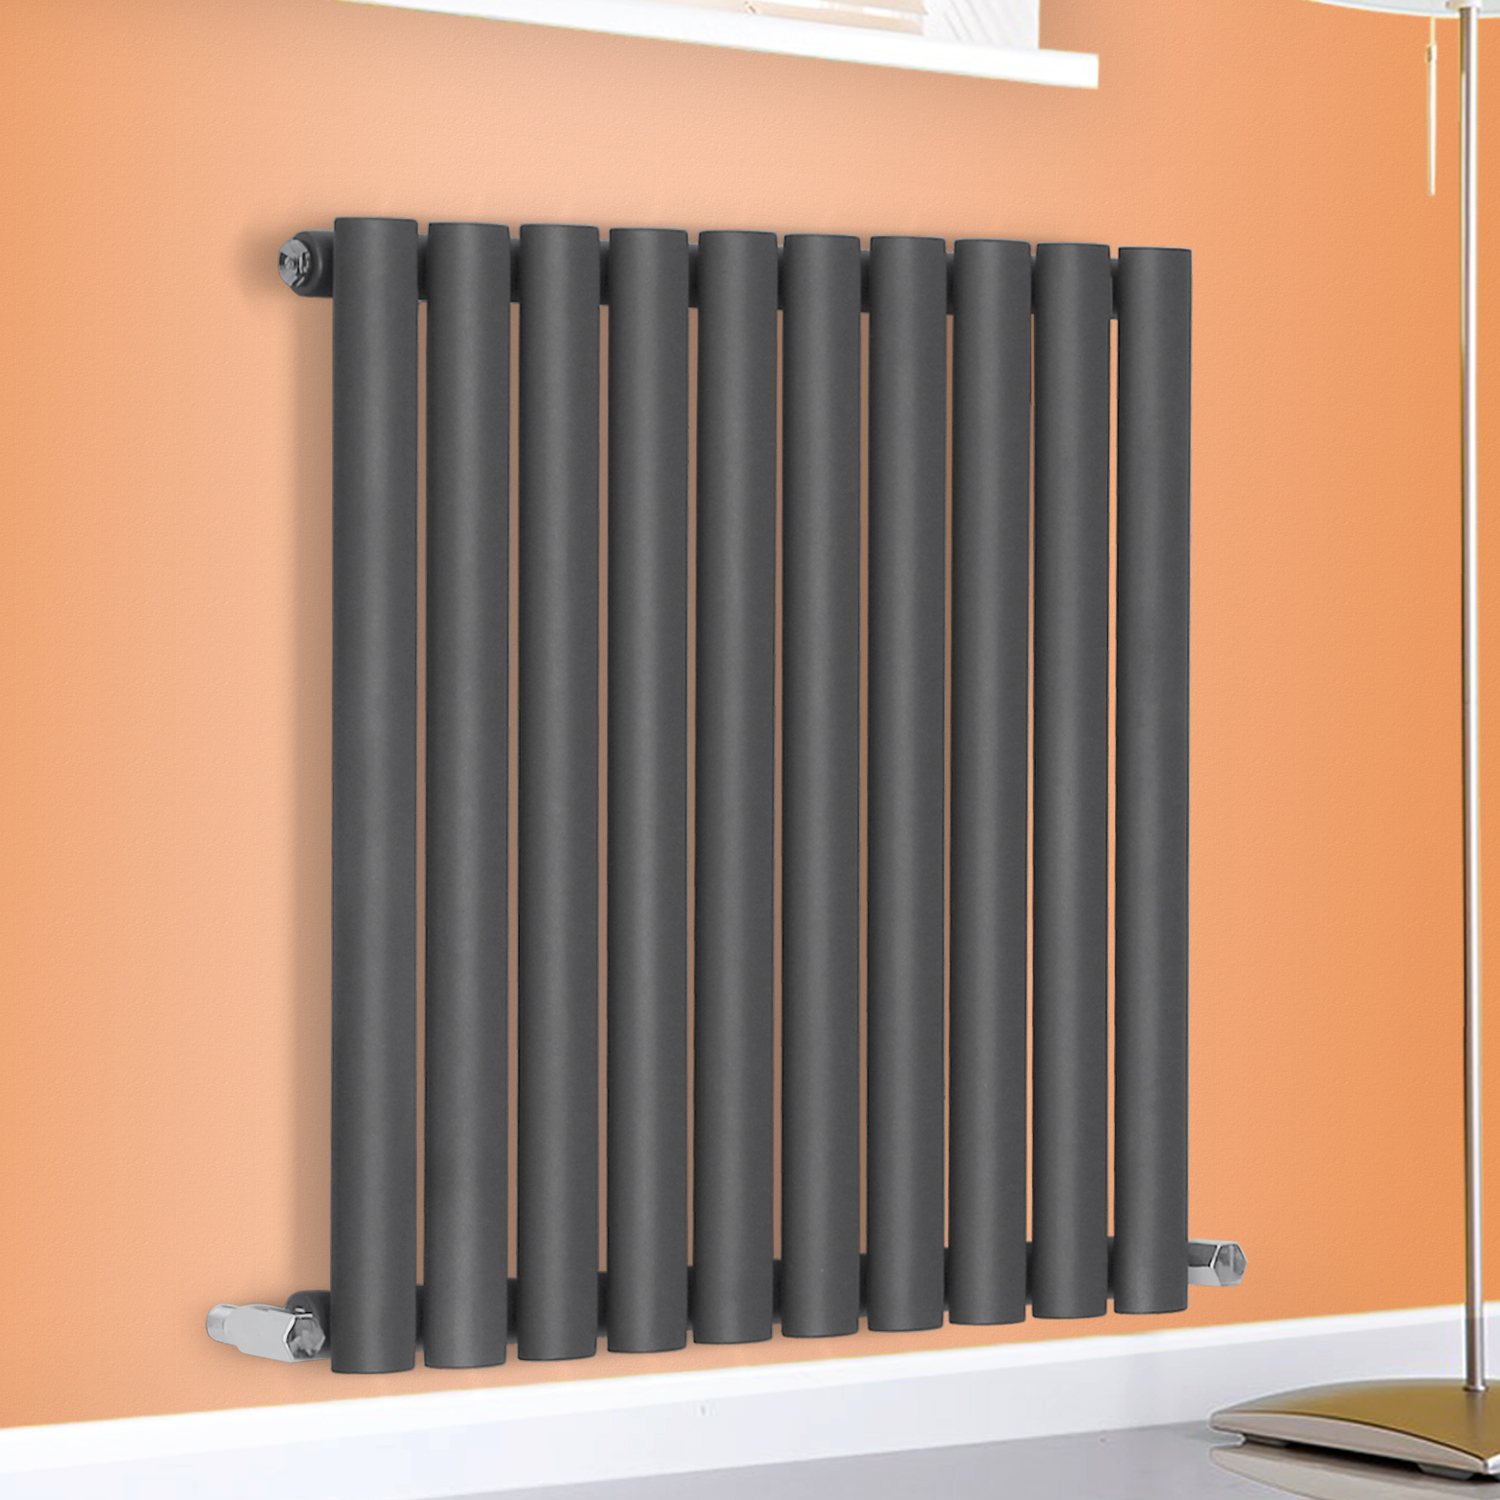 Horizontal Radiator Designer Oval Column Bathroom Heater